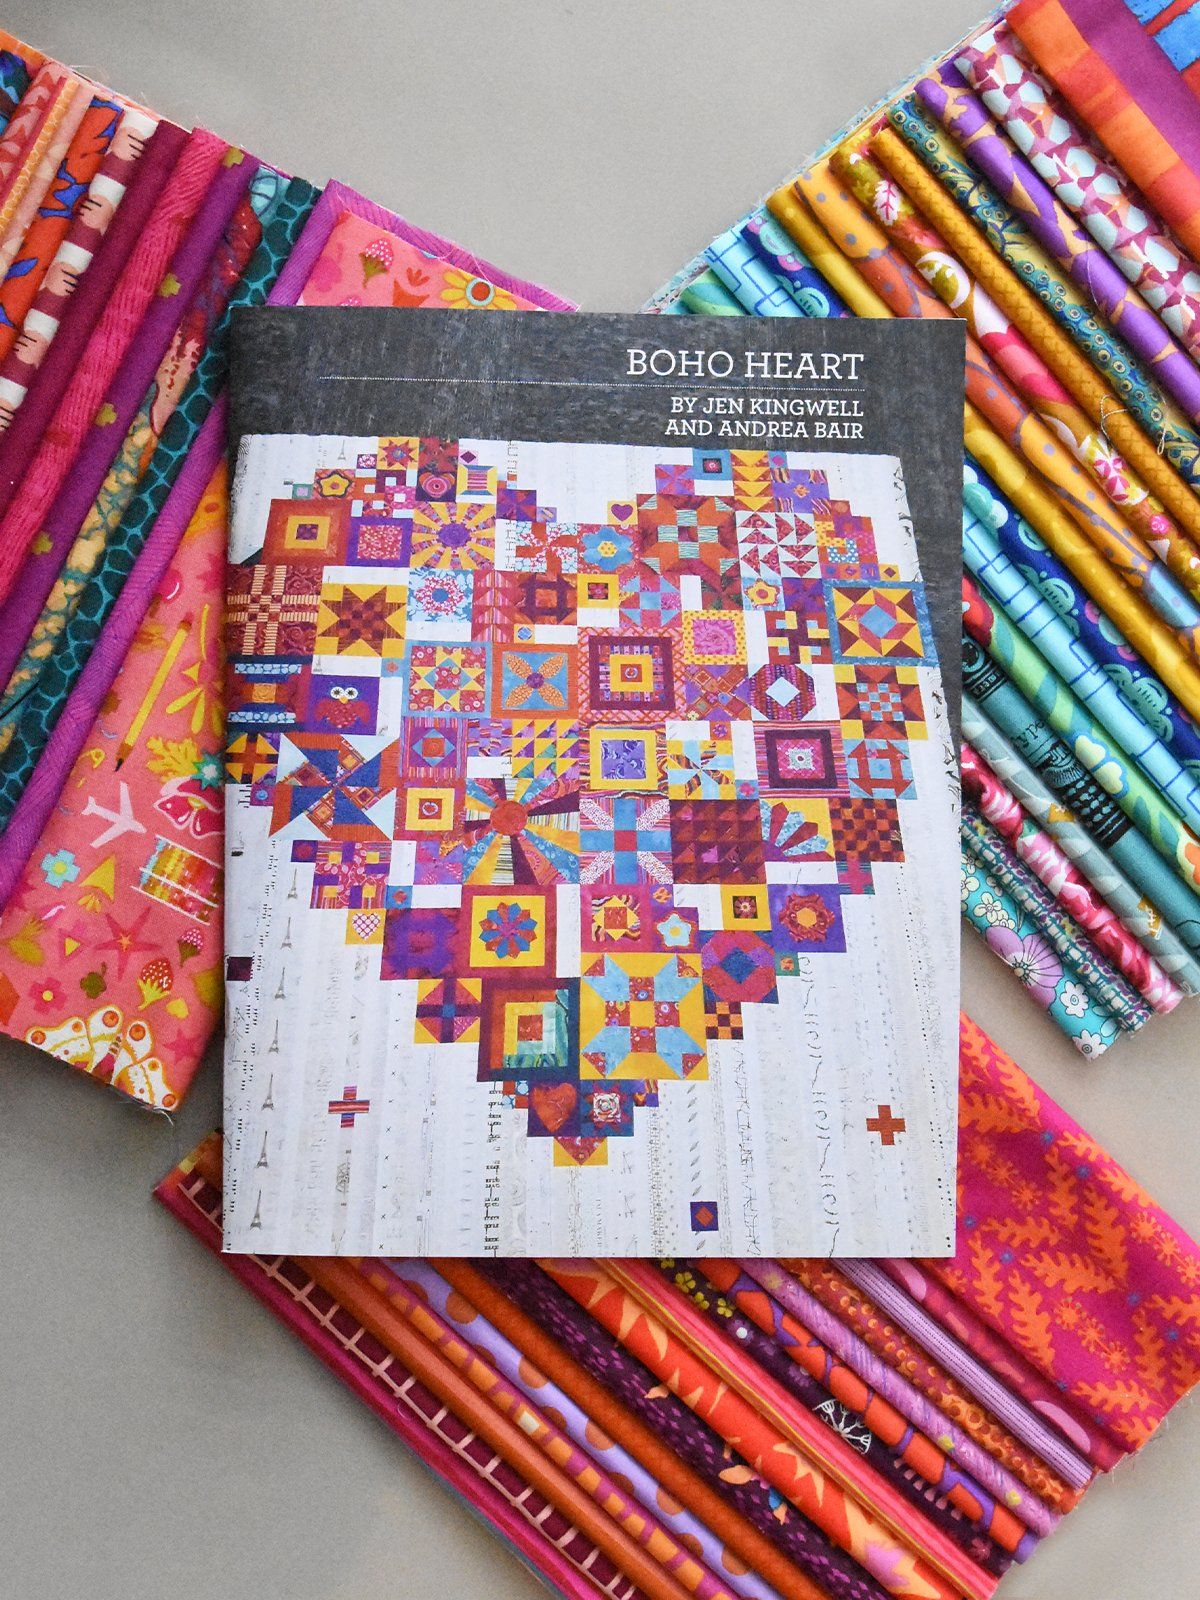 Boho Heart Large Kit - Fabric & Pattern Booklet